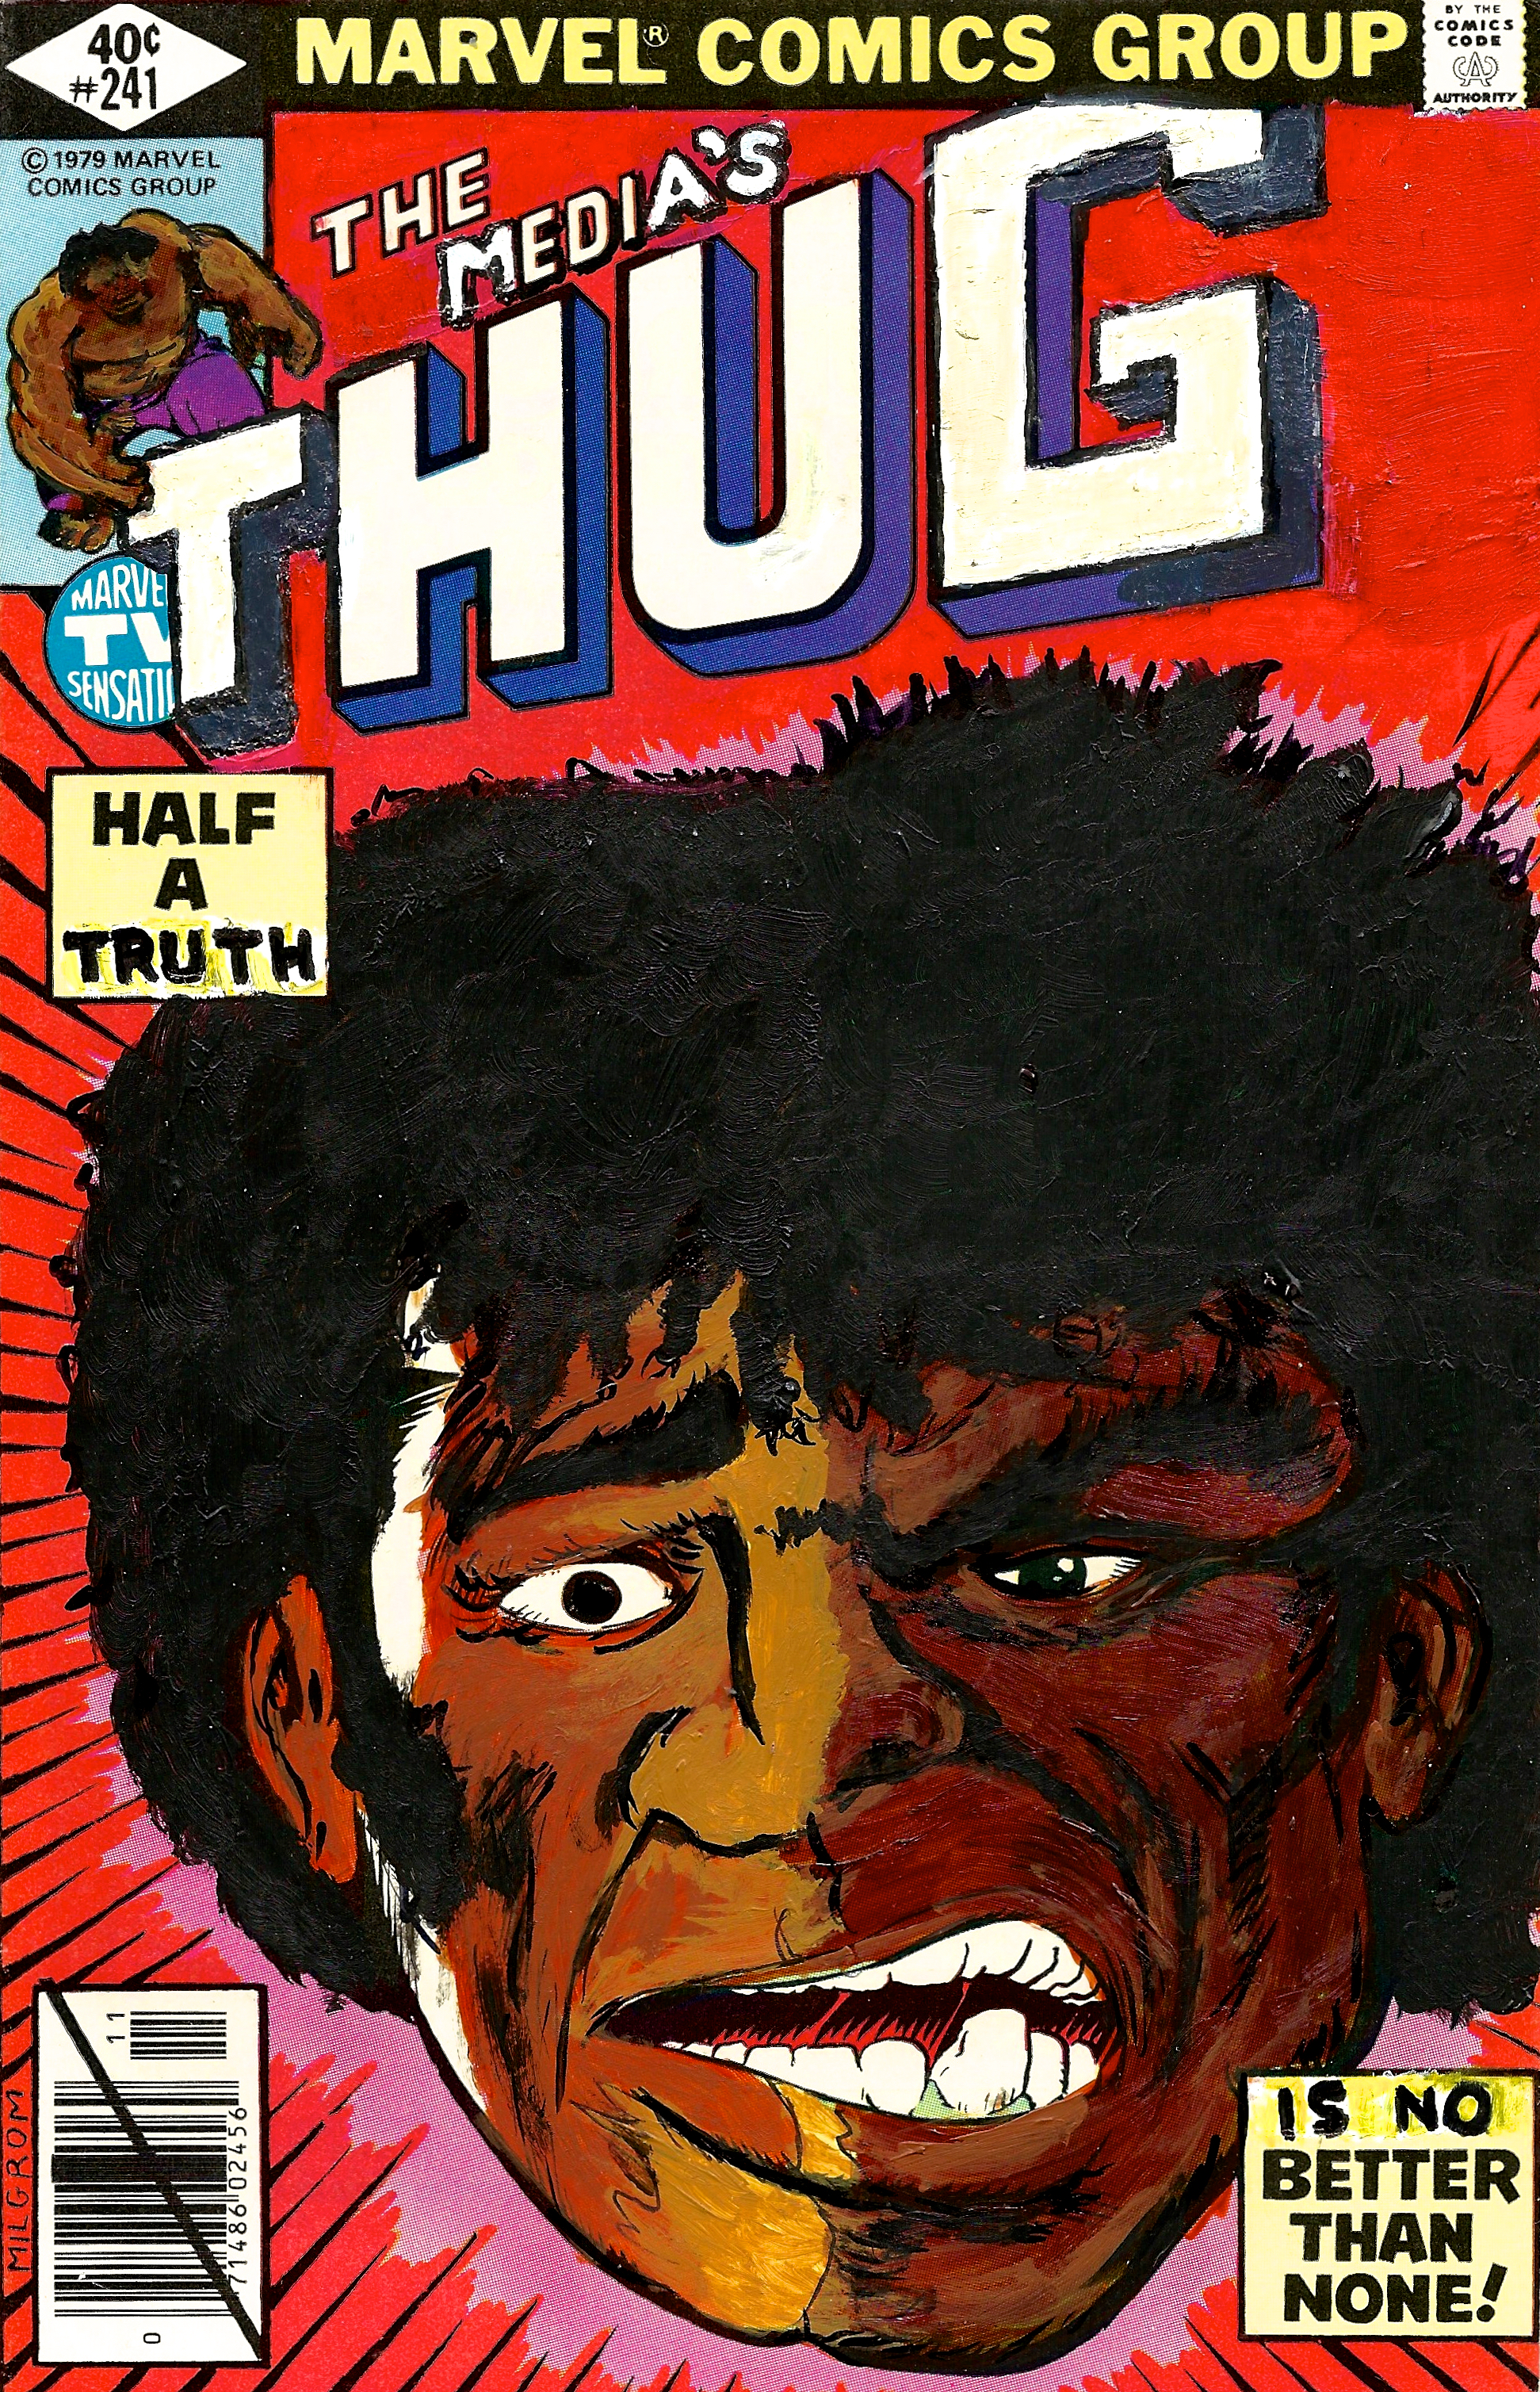 KB-120, Kumasi J. Barnett, The Media's Thug #241 Half a Truth…, 2015, Acrylic, marker, pen and oil marker on comic book, 9 3:4h x 6 1:4w inches.jpg